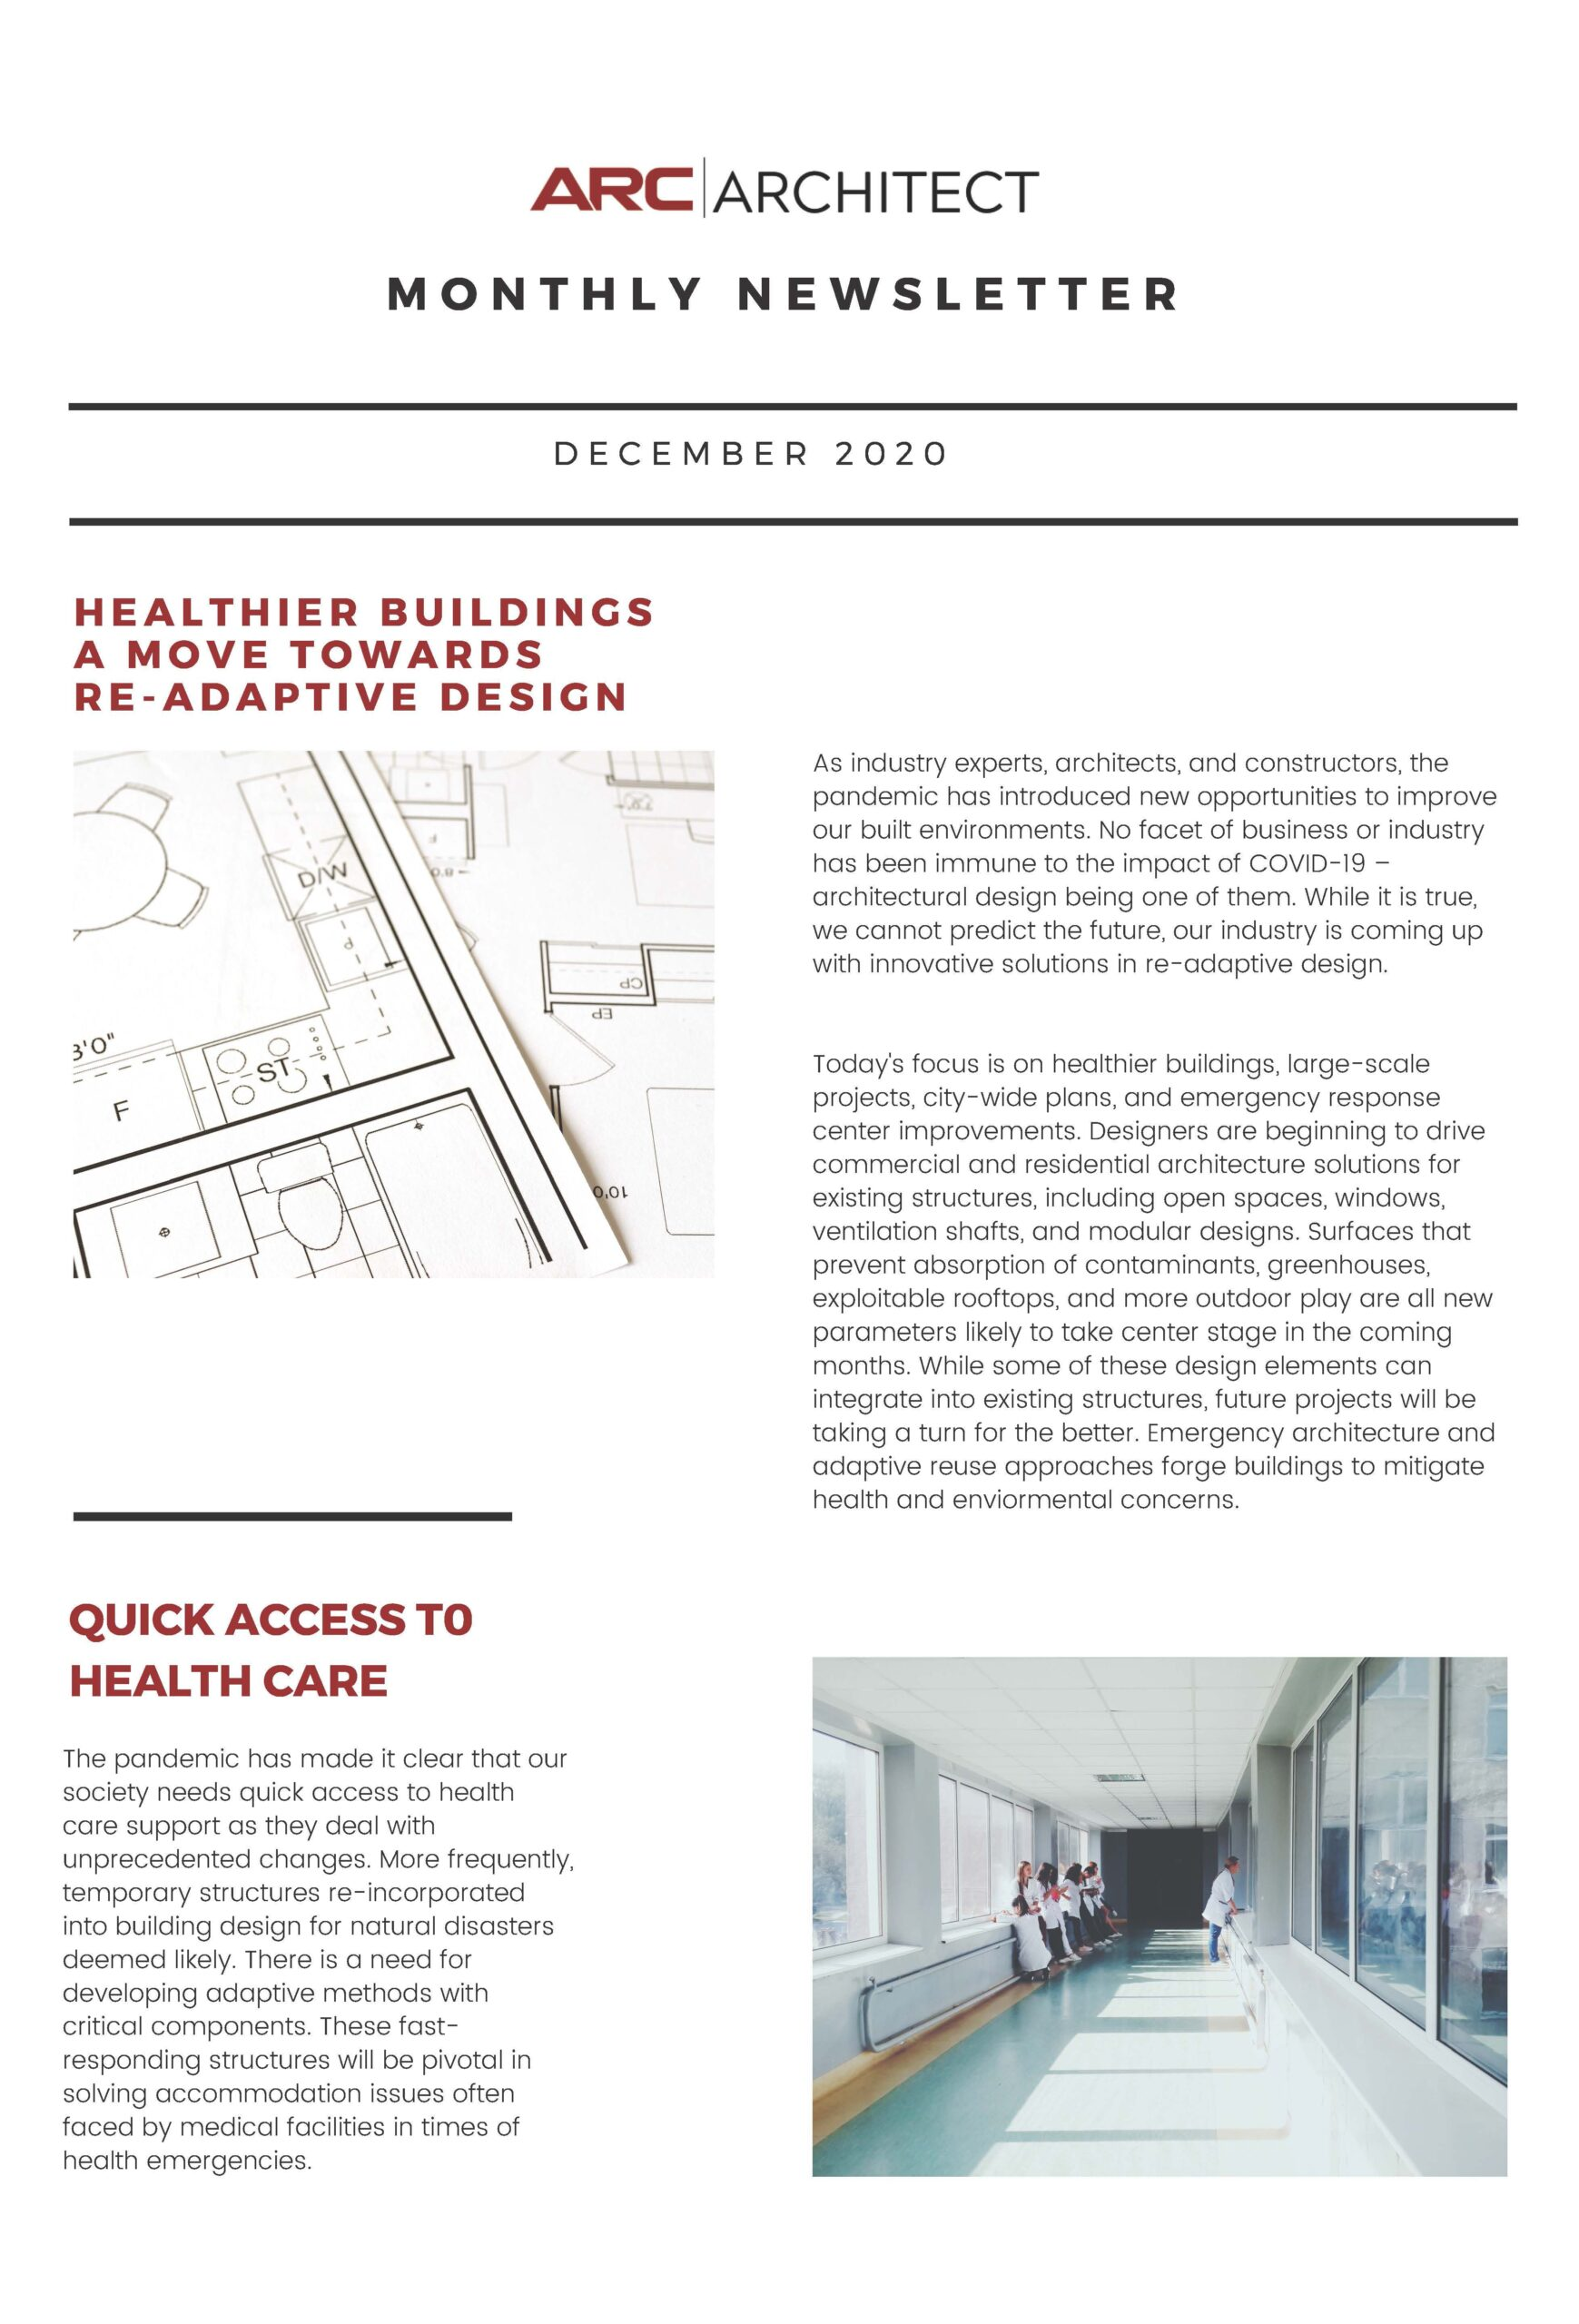 ARC-Newsletter-Dec-2020, Architectural Resource Corp, Arc architect, Illinois